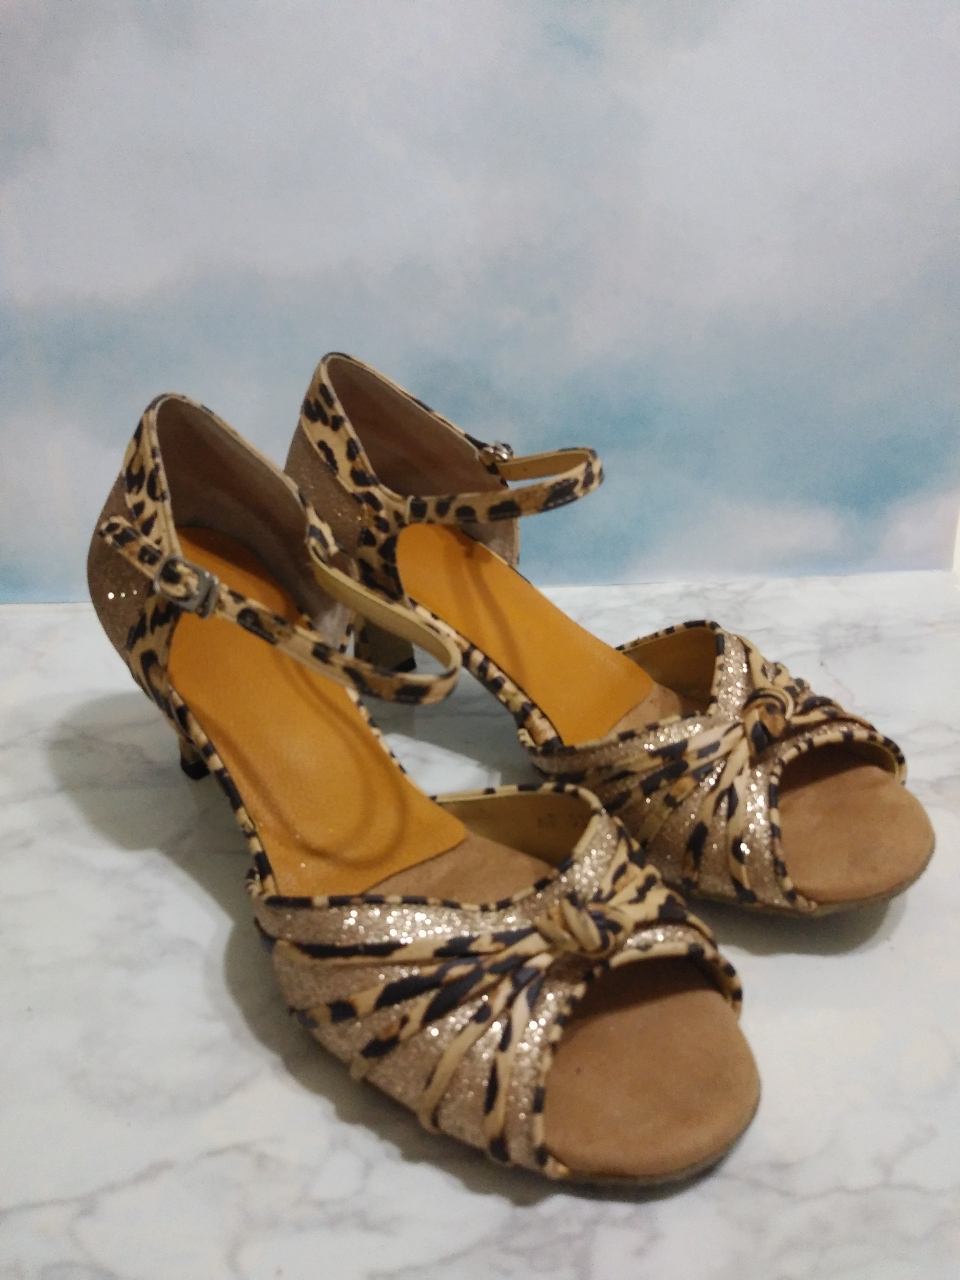 shall we dance!? shoes